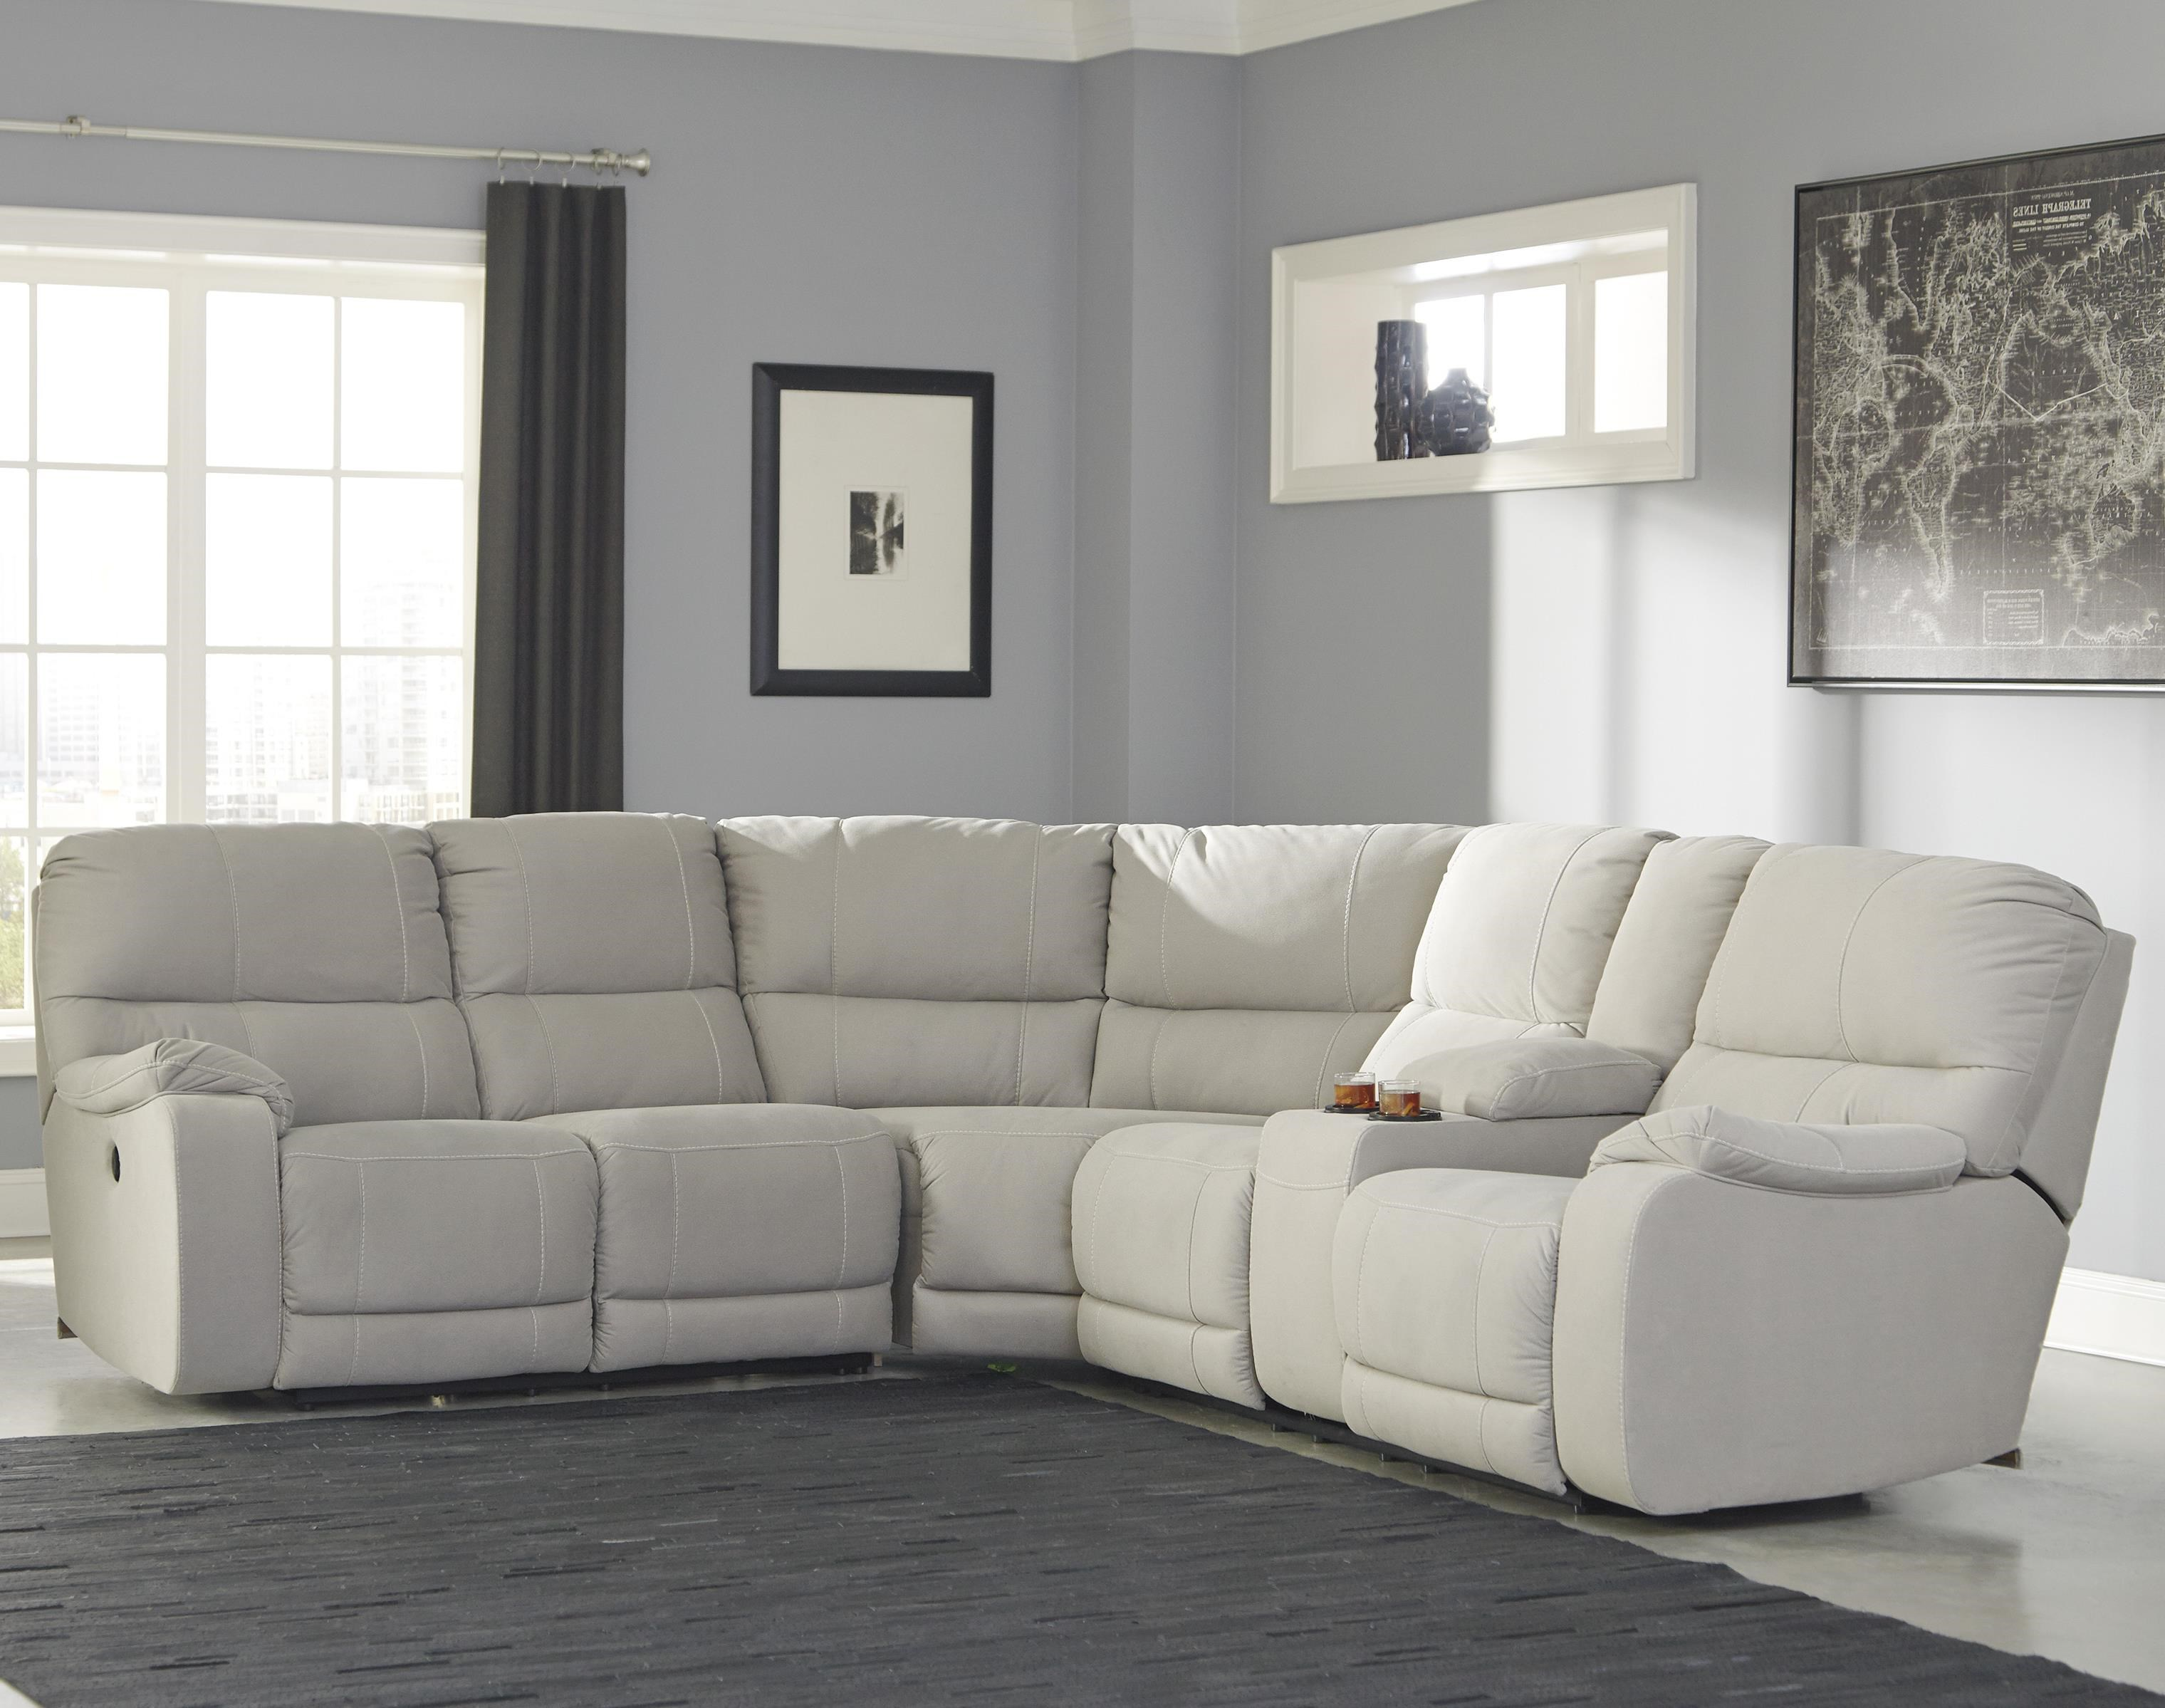 Benchcraft Bohannon Power Reclining Sectional with Console  sc 1 st  Pilgrim Furniture City & Benchcraft Bohannon Power Reclining Sectional with Console ... islam-shia.org